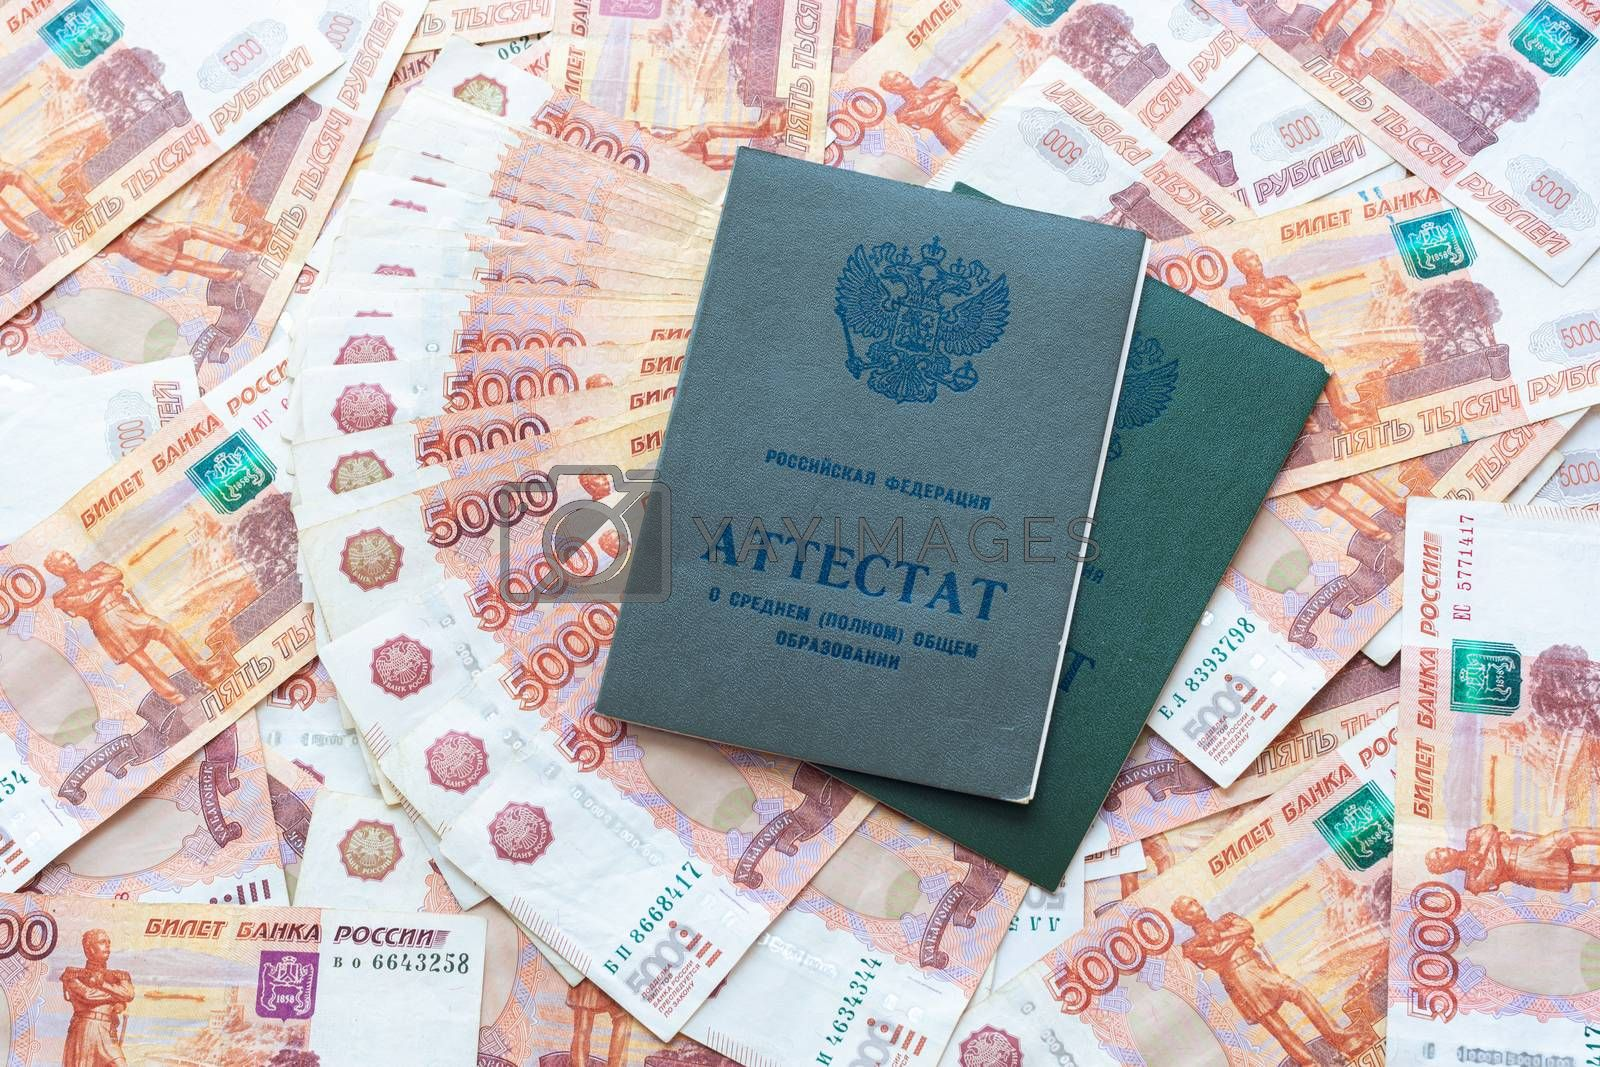 The five thousandth Russian rubles bear two certificates of secondary complete general education